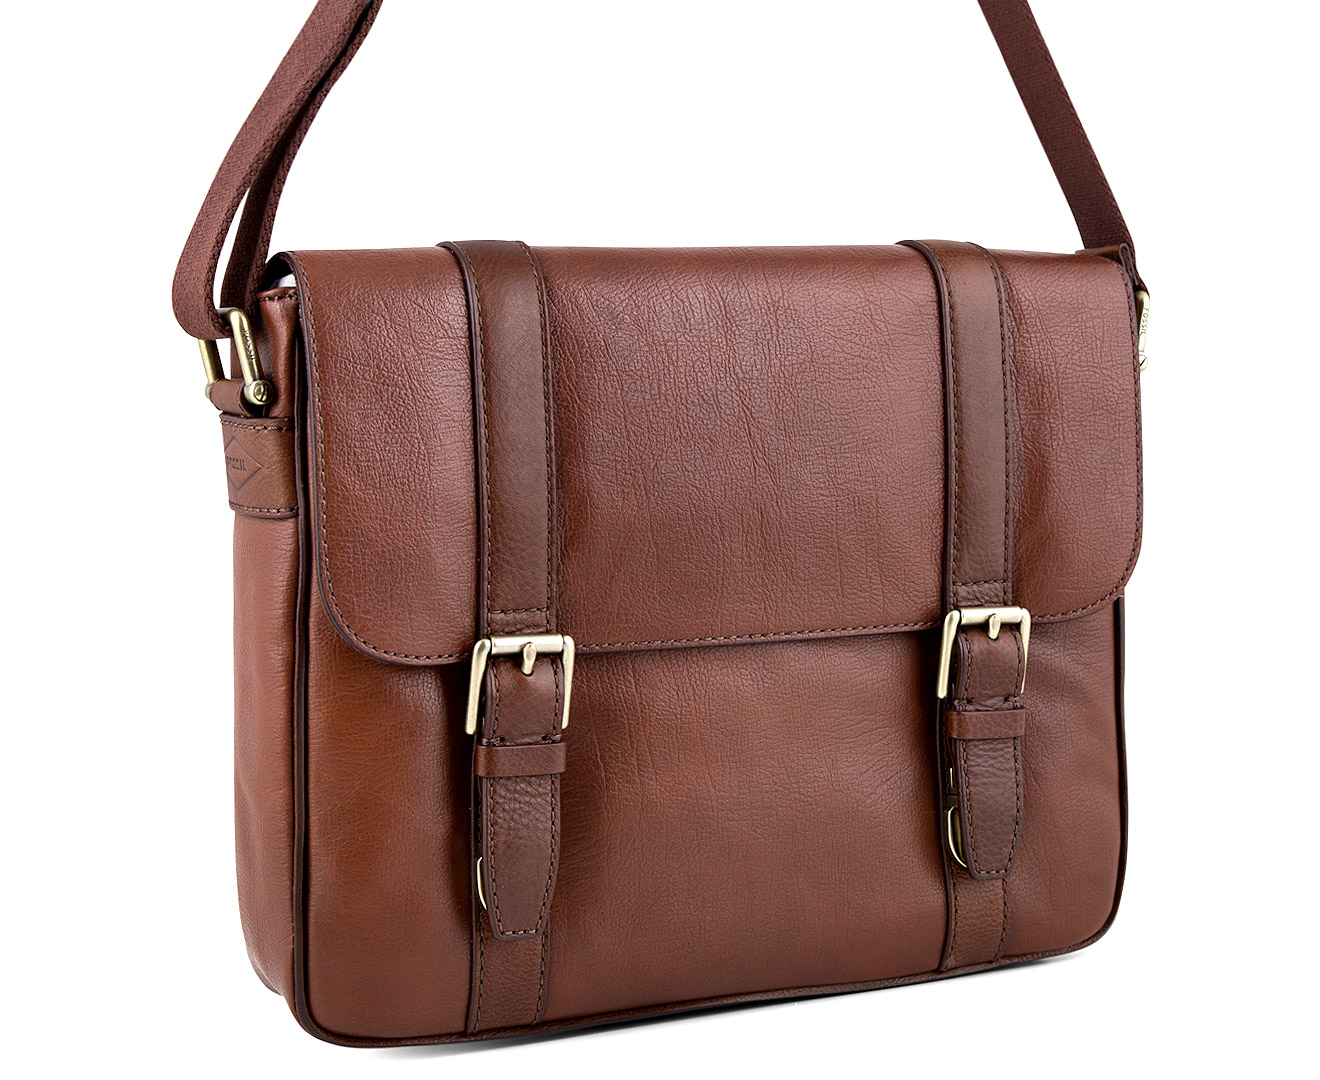 Fossil Men s Estate EW City Bag - Cognac  06b09d360f1c5